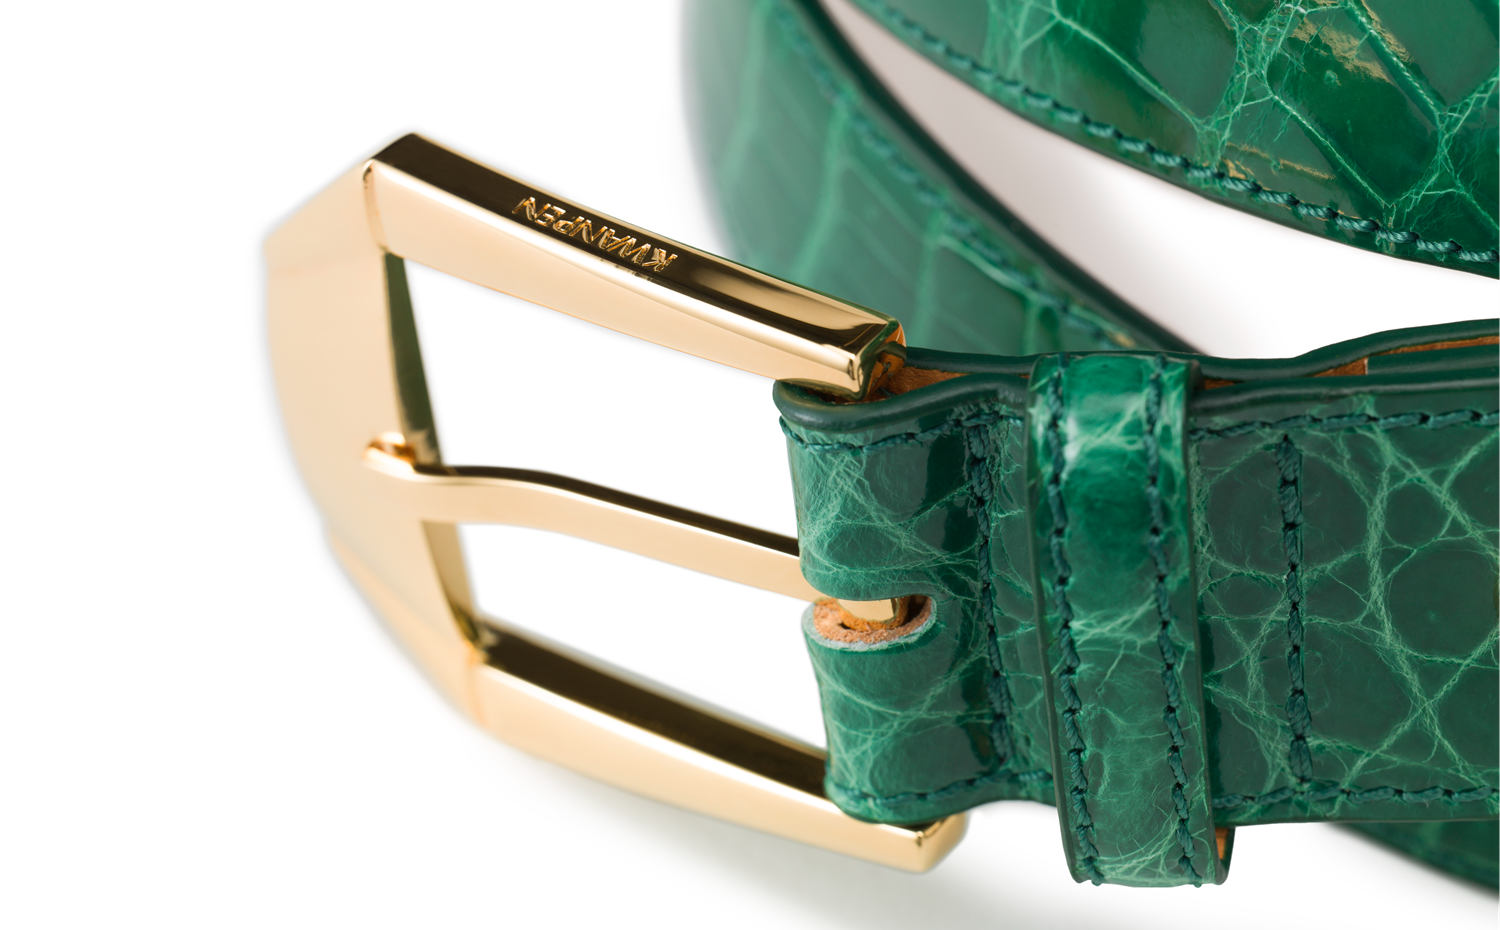 KWANPEN Men's Deluxe Crocodile Belt - Emerald